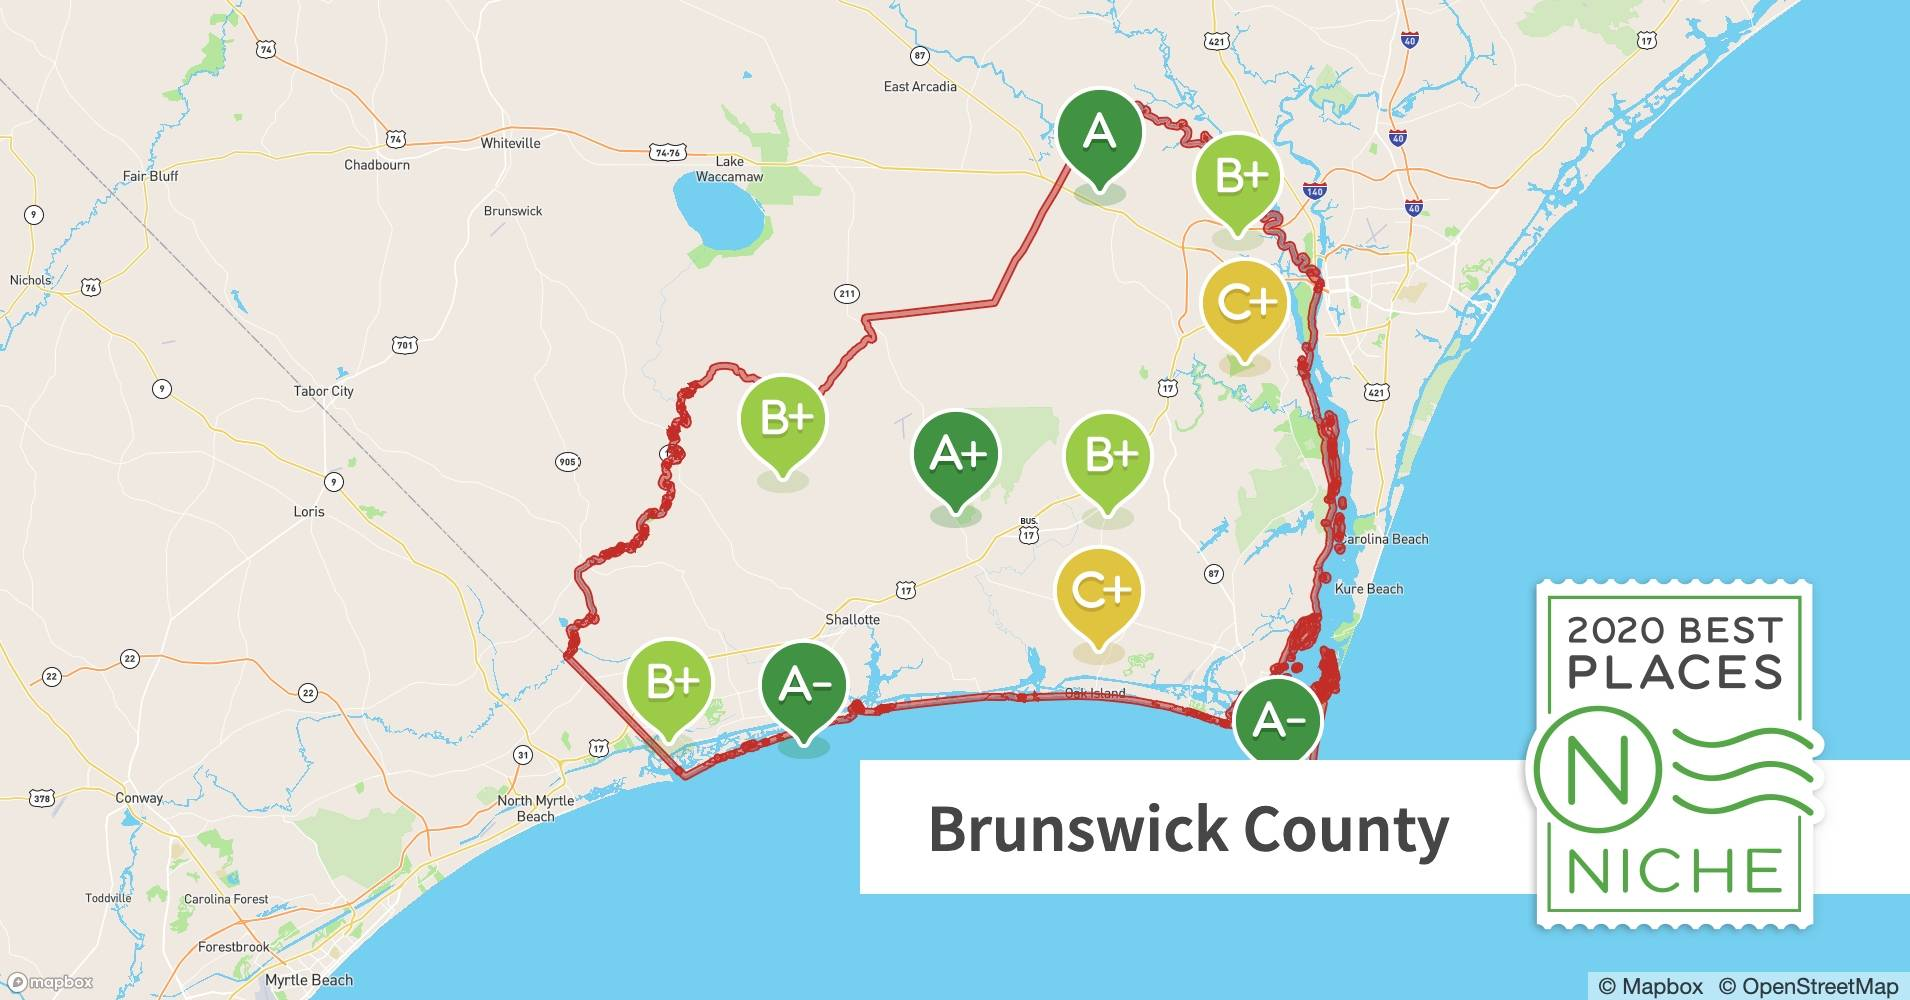 2020 Safe Places to Live in Brunswick County, NC - Niche